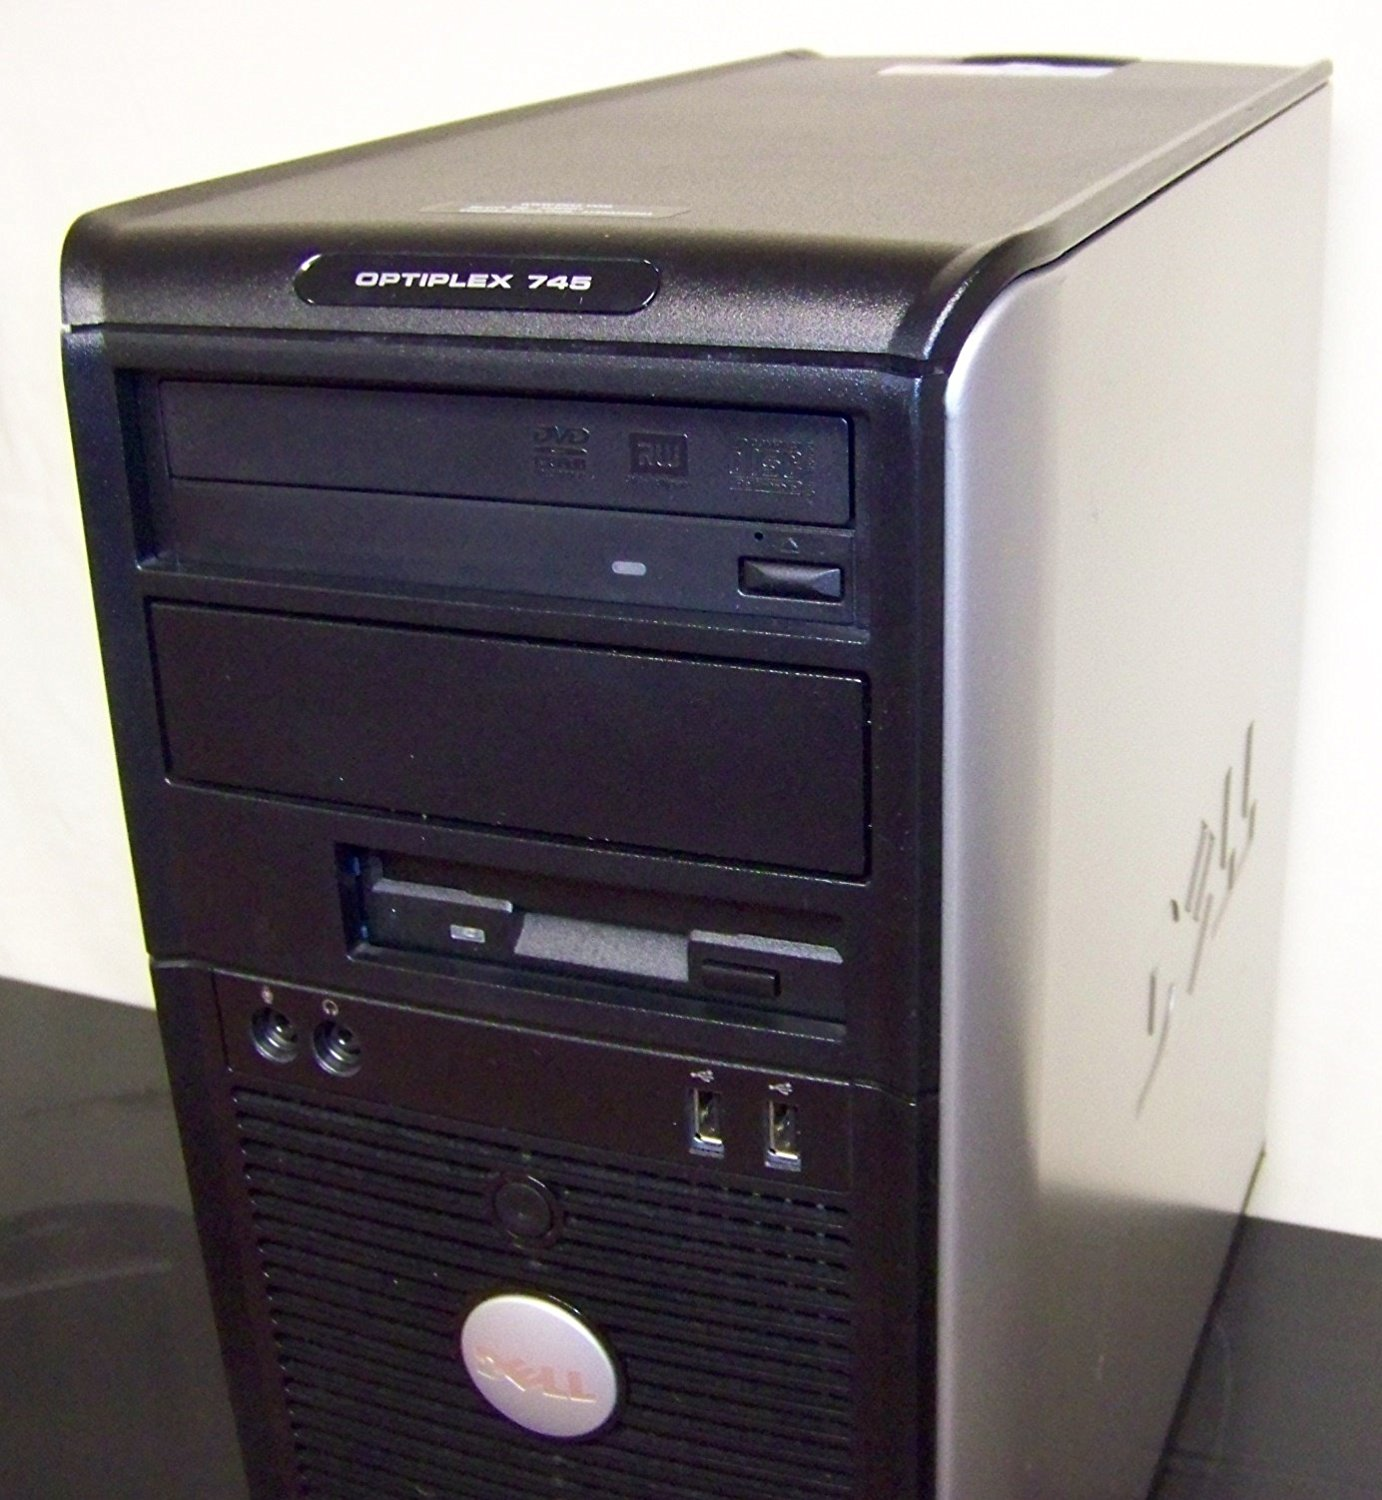 Dell Optiplex 745 Tower, Windows 7 Home 32 Bit, Fast and Powerful 3.4GHz Pentium D Dual Core Processor, 2GB DDR2 High Performance Memory, Large 160GB SATA Hard Drive, DVD/CDRW, Wireless Capable (Adaptor Sold Separately)